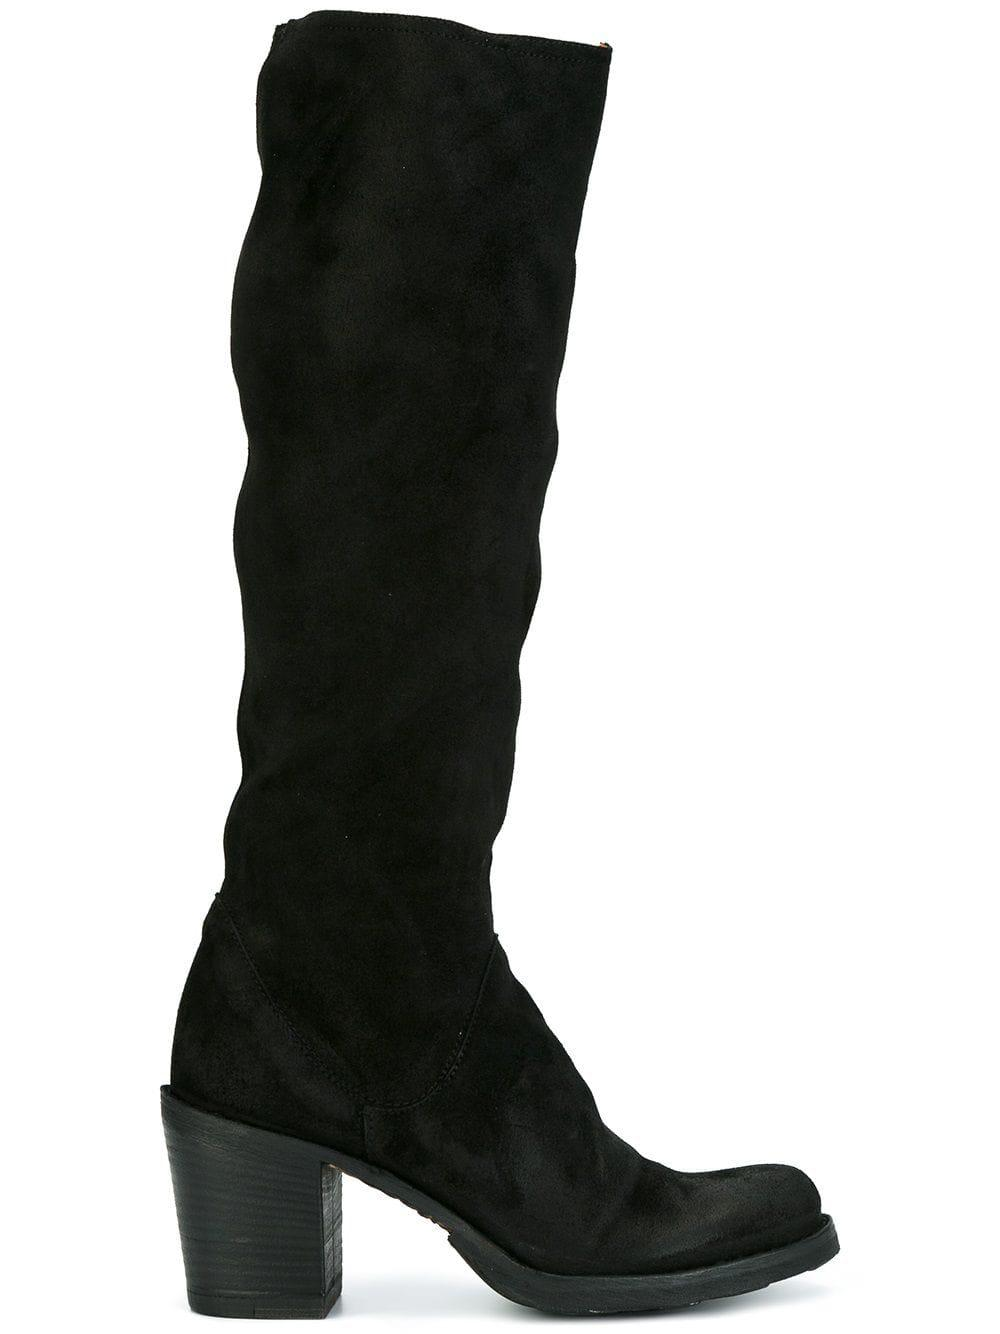 Fiorentini + Baker Leather Knee High Boots in Black